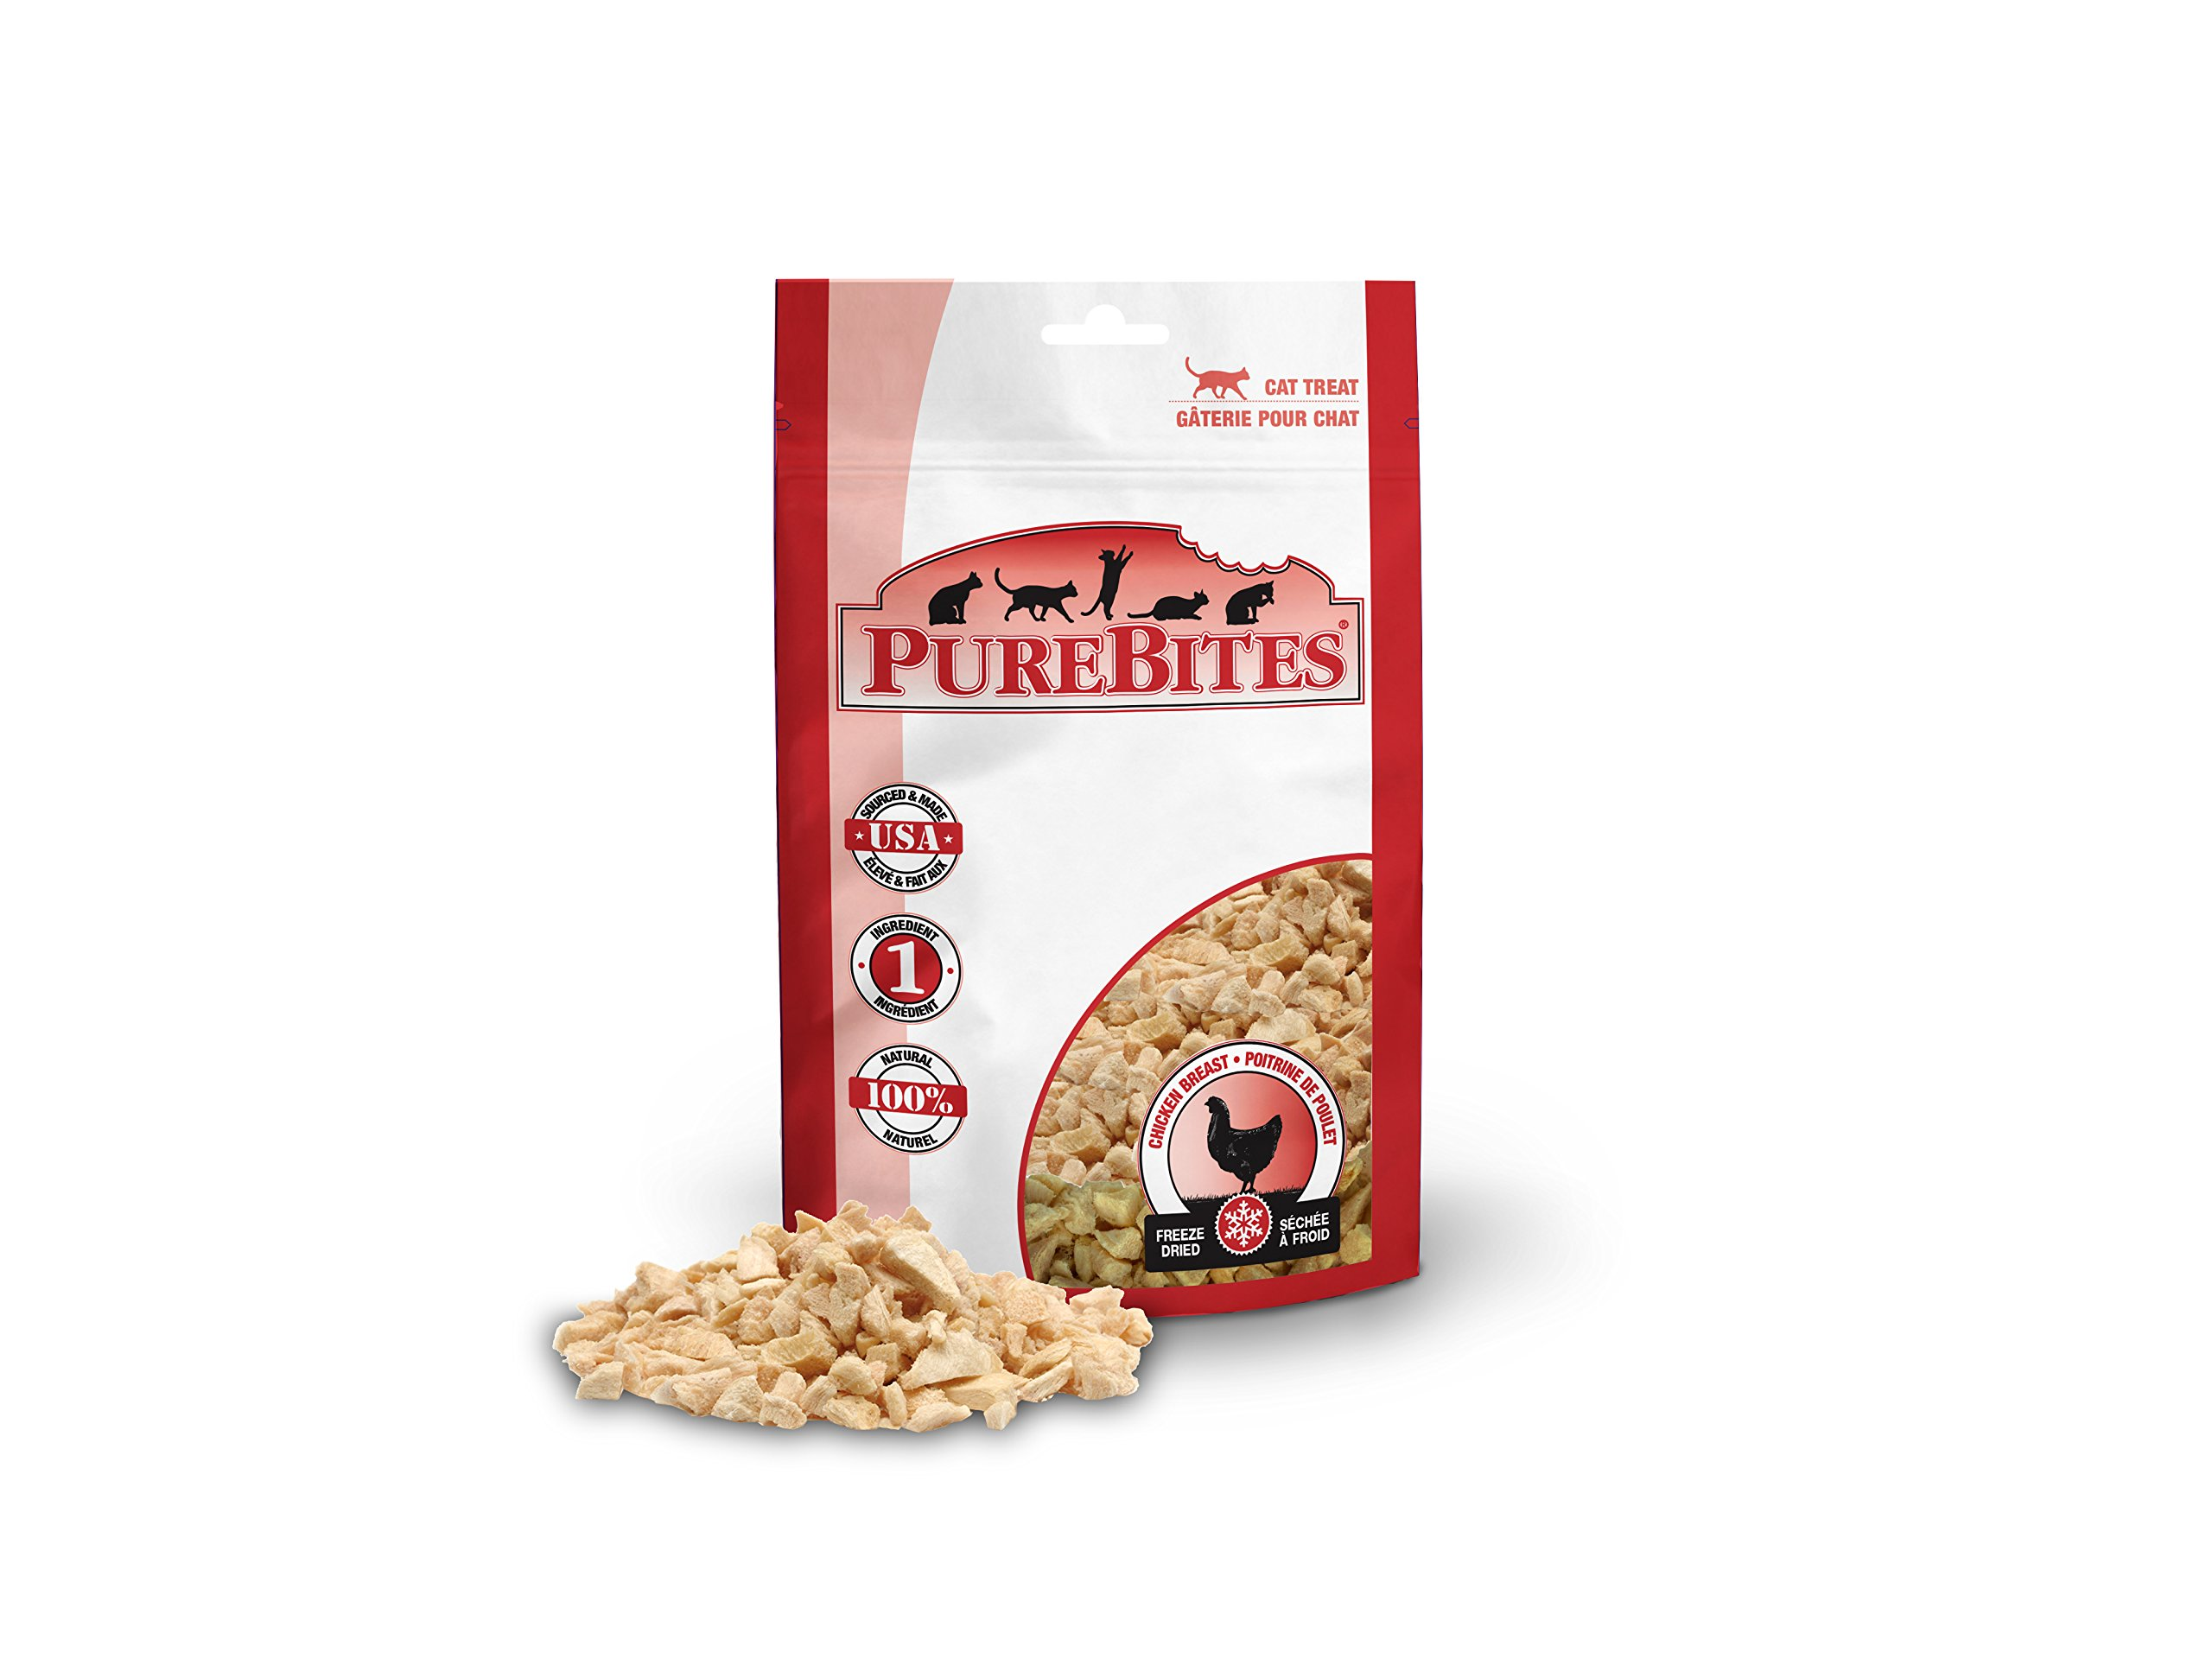 Purebites Chicken Breast For Cats, 1.09Oz / 31G - Value Size, 14 Pack by PureBites